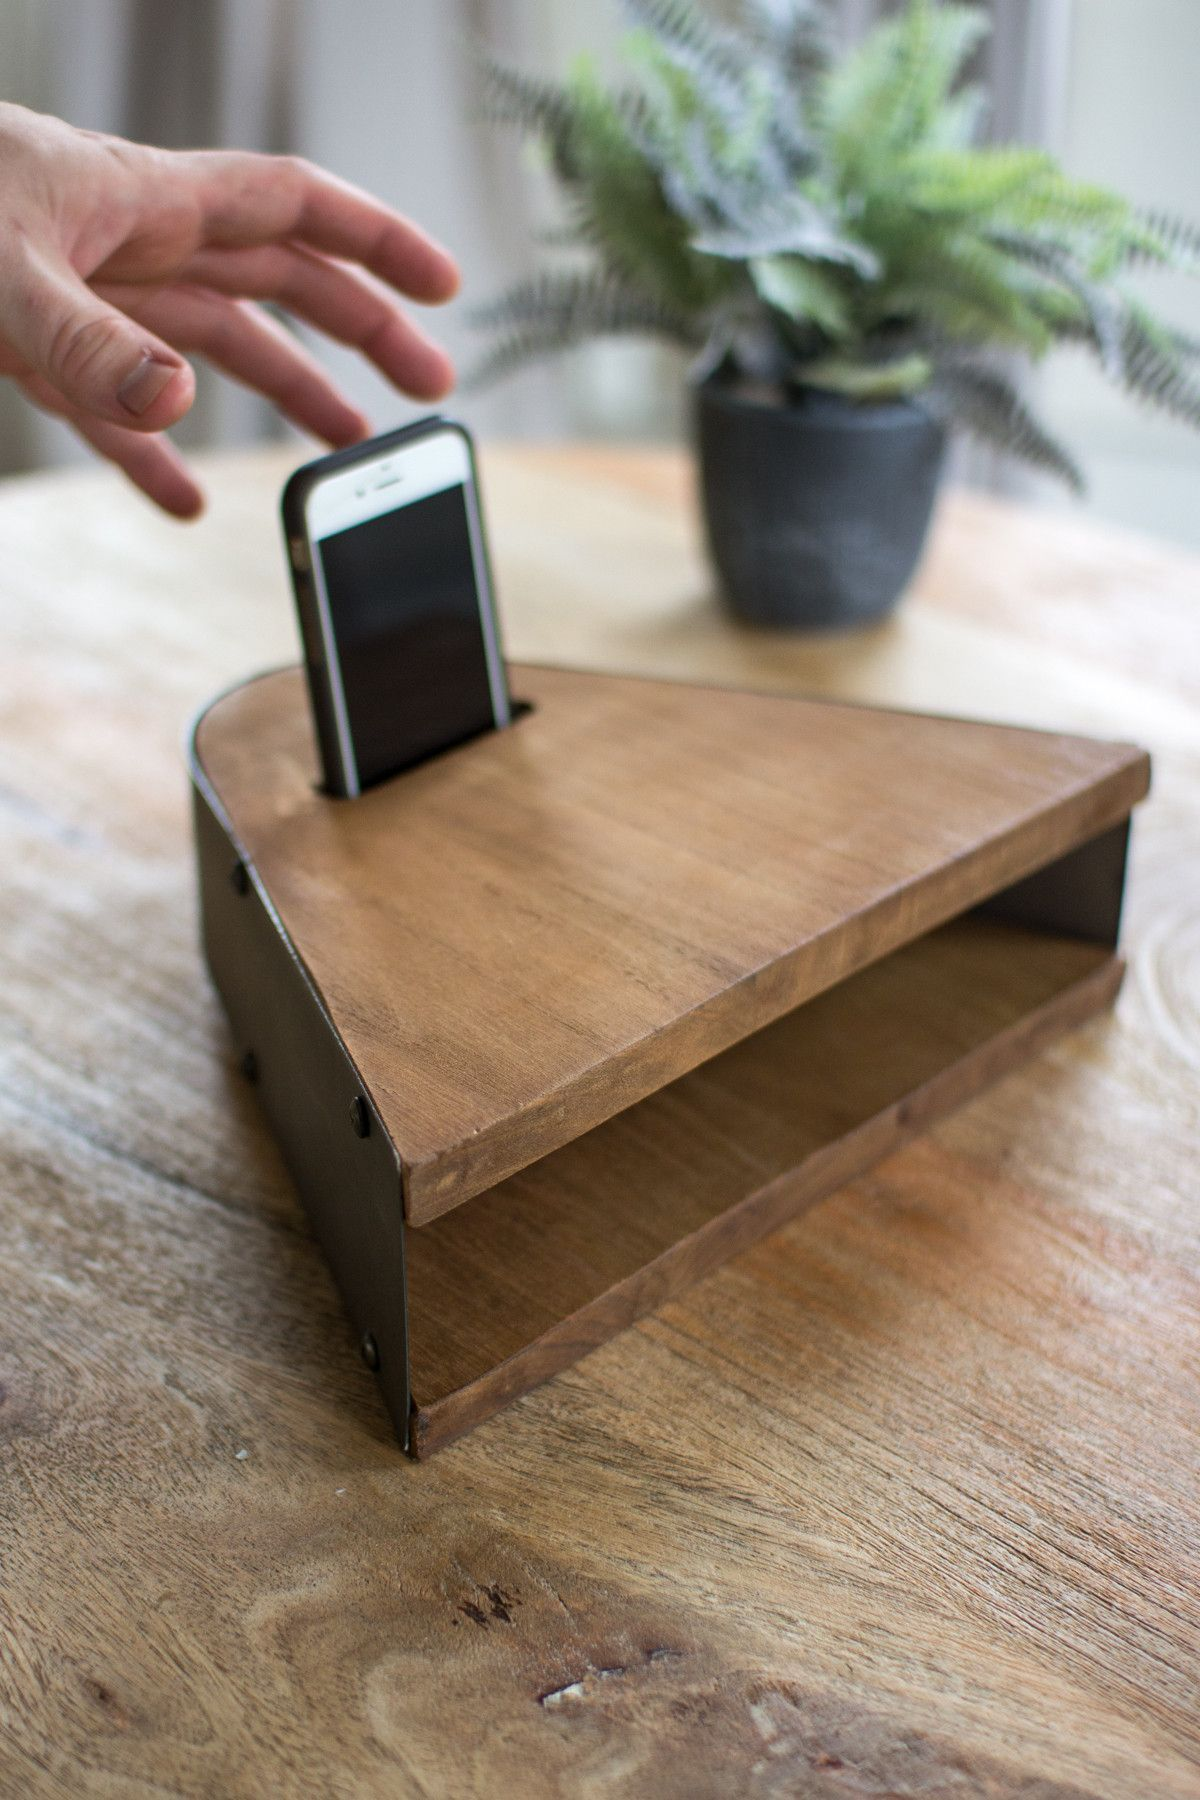 Prop this Honey Wood Smart Phone Speaker on the coffee table